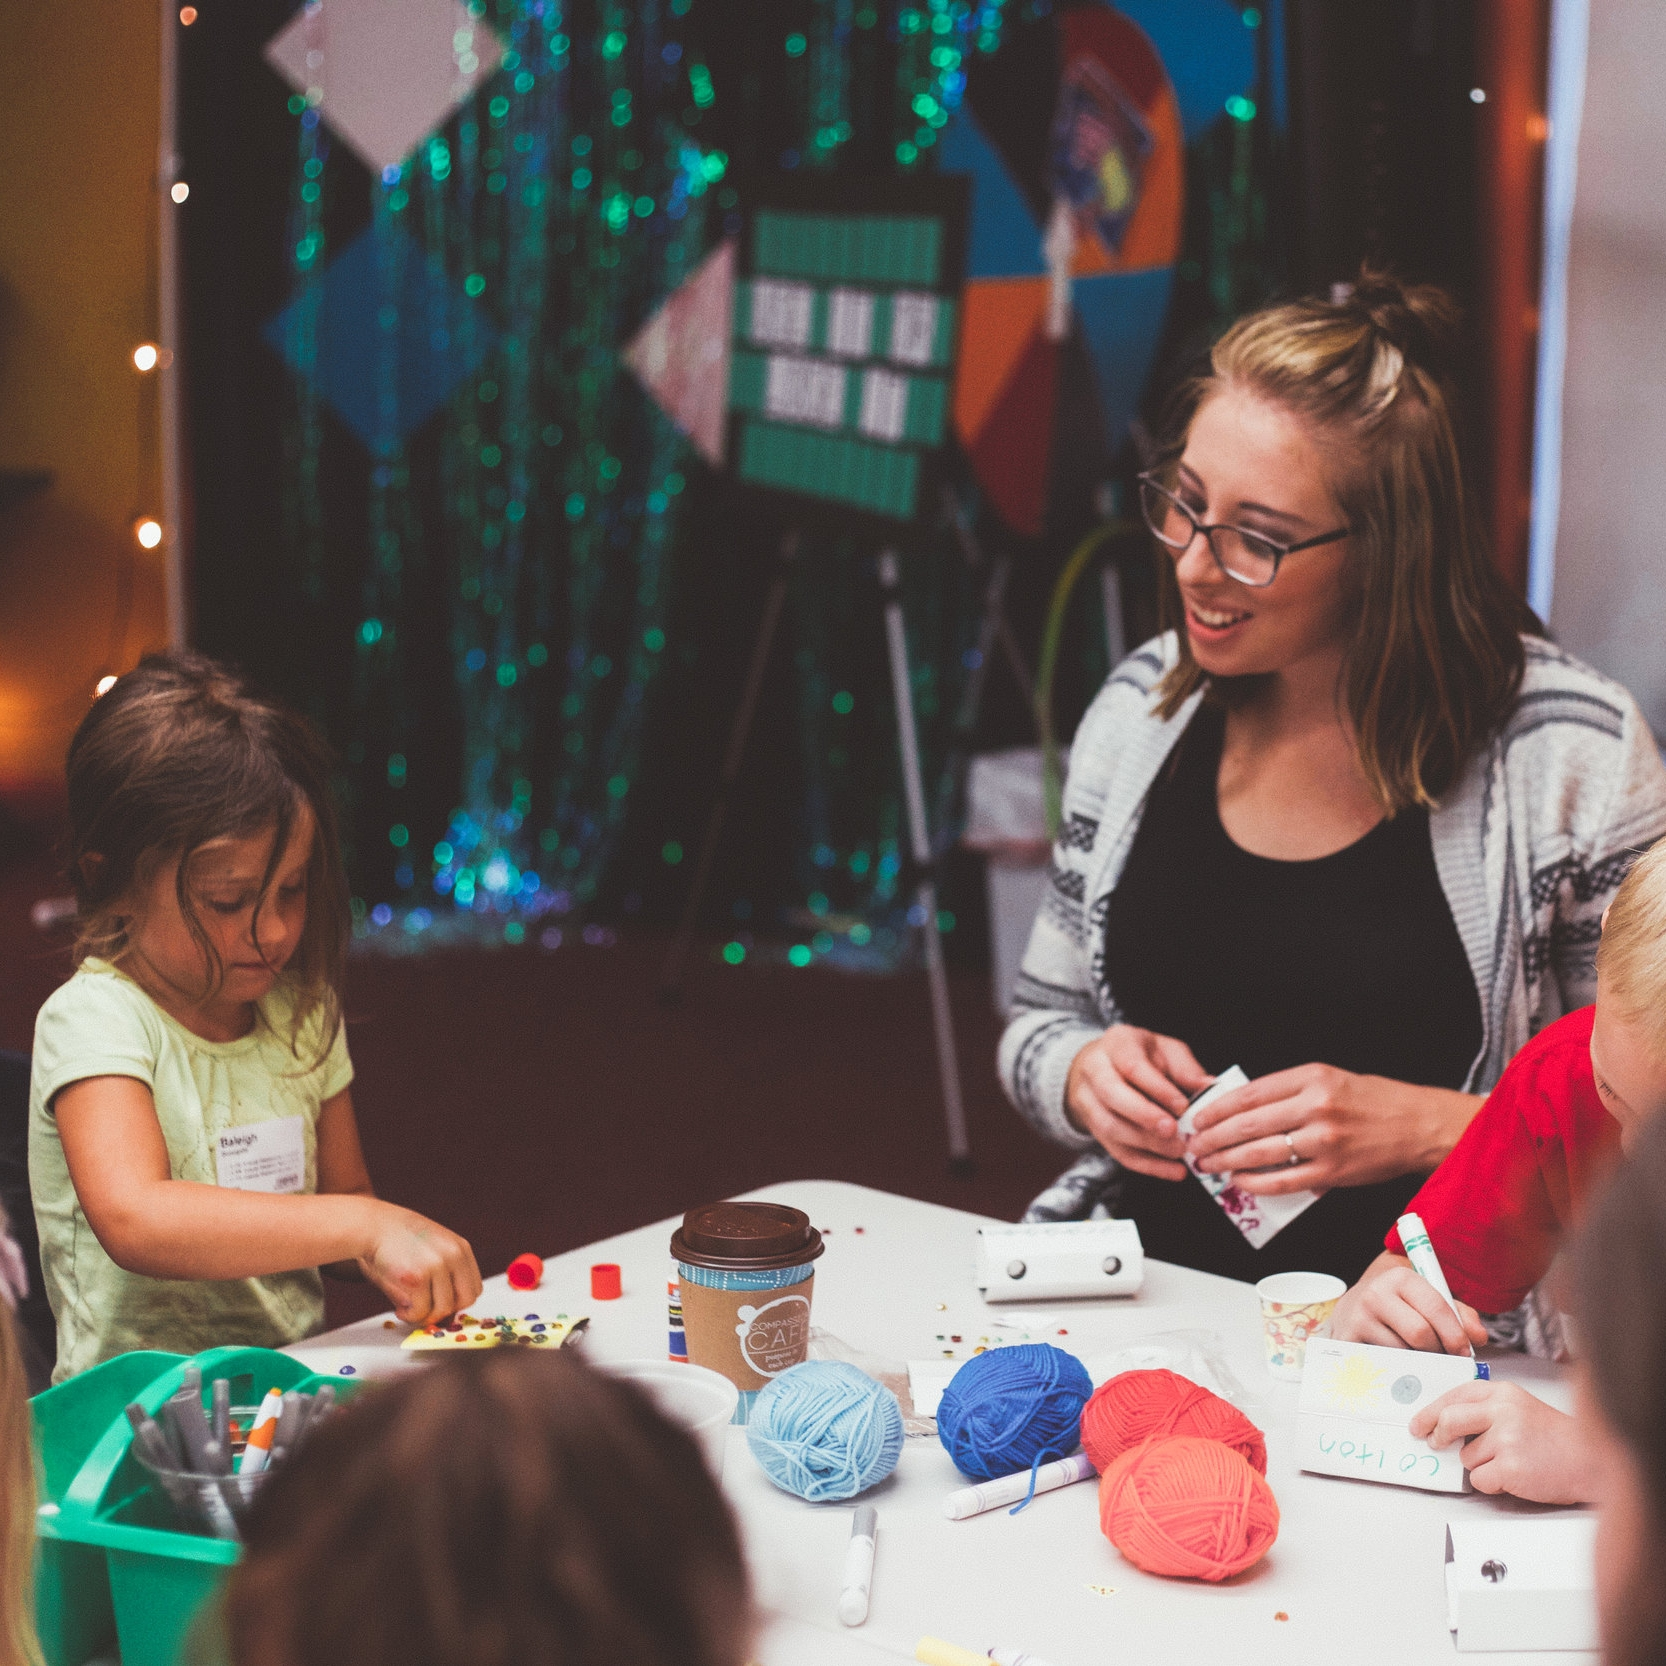 NEXT GEN:  If you're passionate about kids and youth learning and growing in their faith, you can have a direct impact on encouraging the next generation to connect with God by joining a NextGen serve team. Roles range from behind-the-scenes to interacting directly with kids and teens.